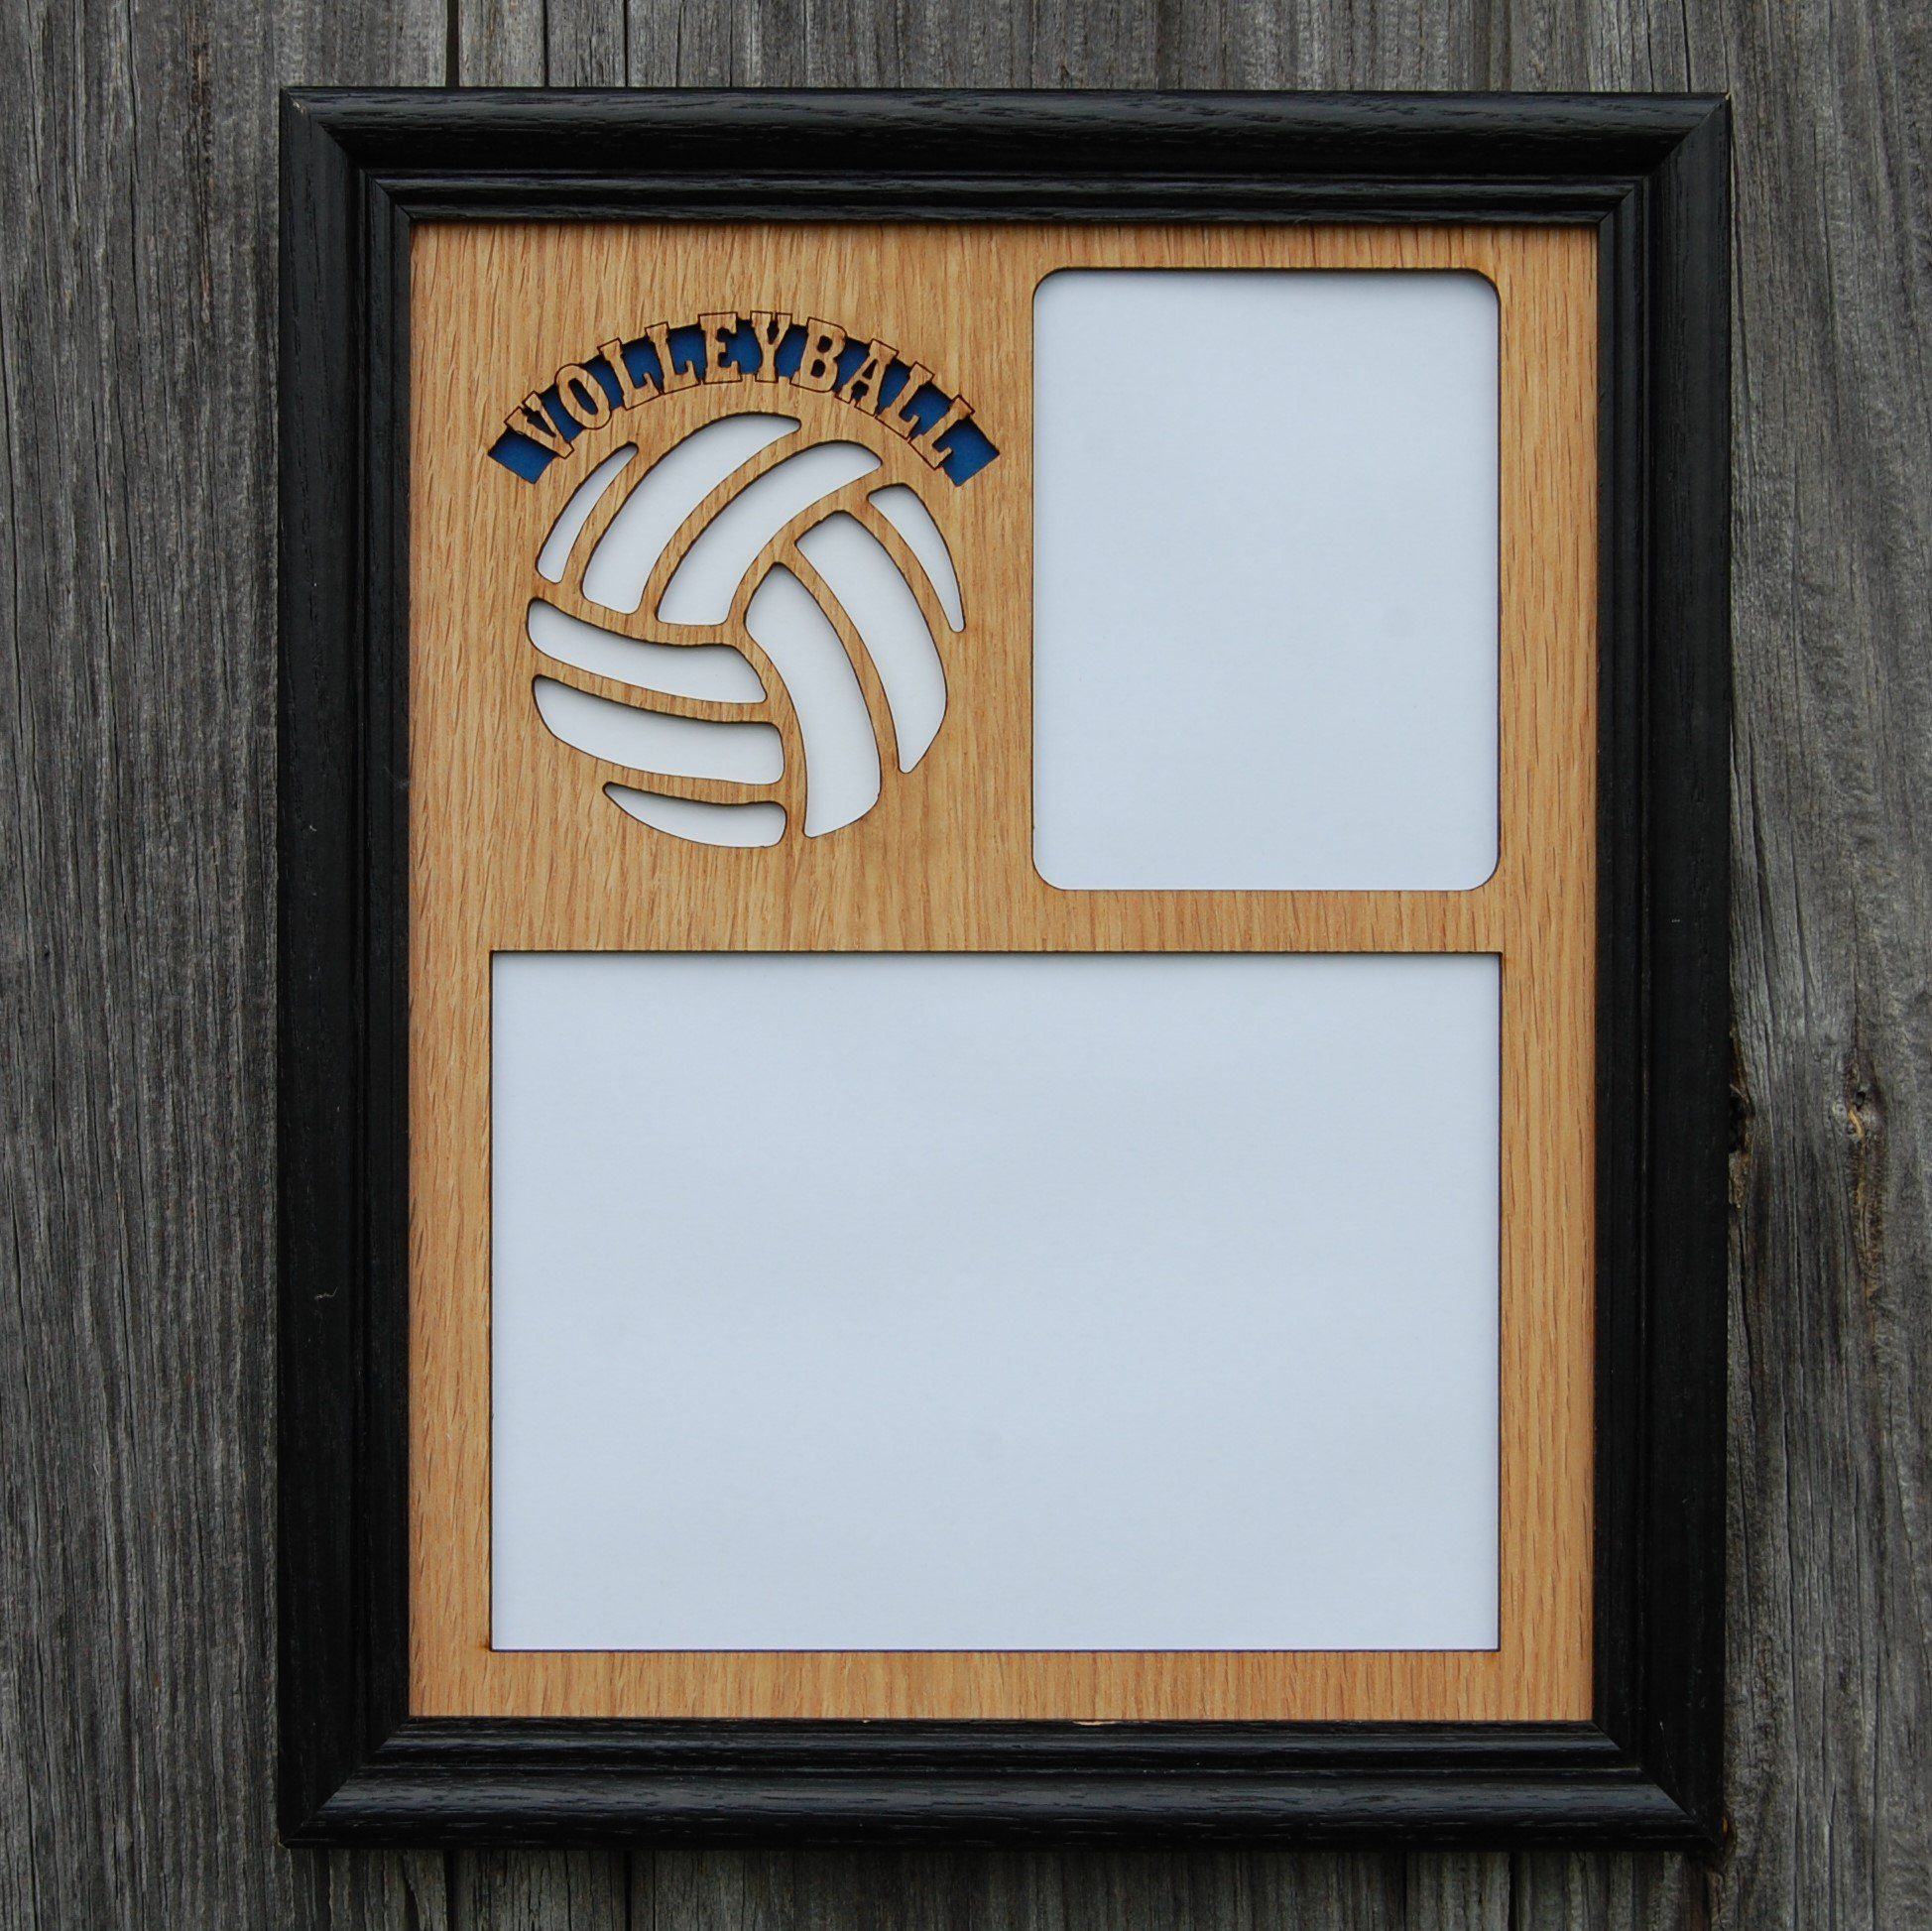 Volleyball Picture Frame Hold 5x7 And 3x4 Photos Volleyball Pictures Picture Frames Picture Frames Online